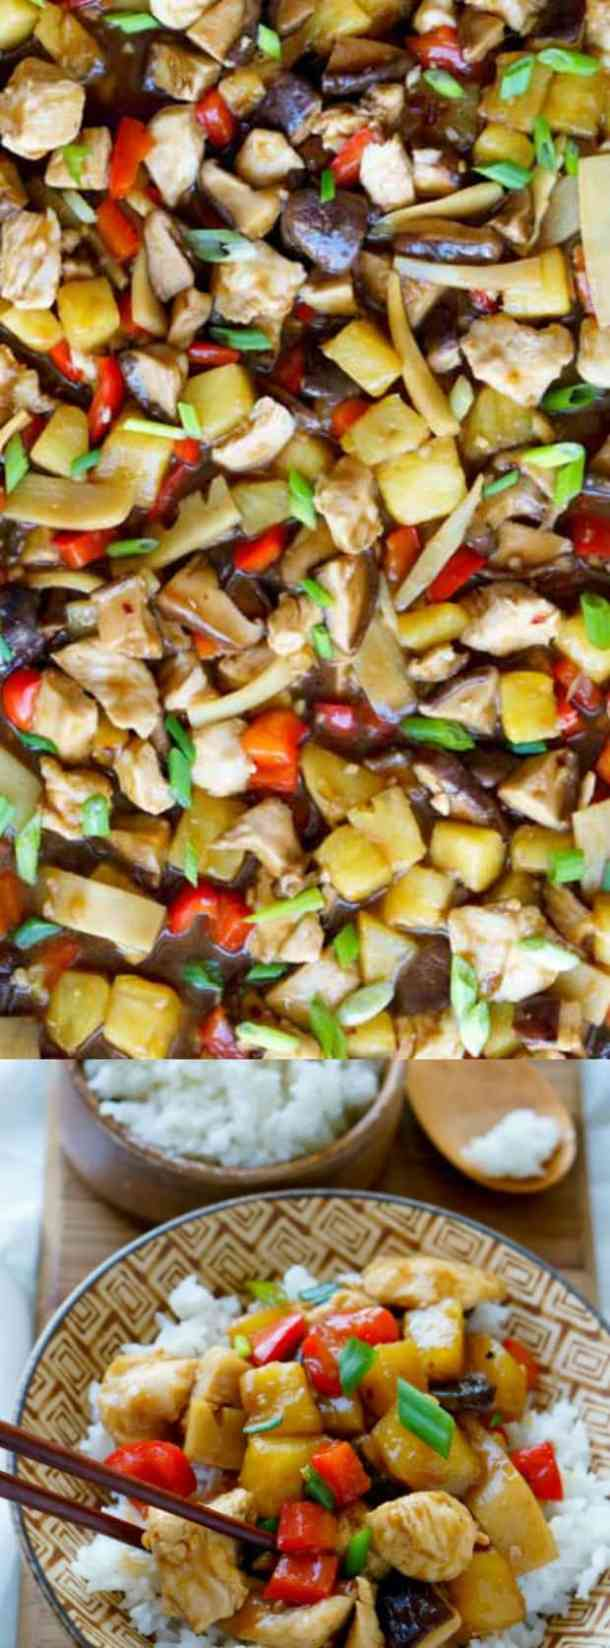 Sheet Pan Stir-Fried Chicken Teriyaki with Pineapple